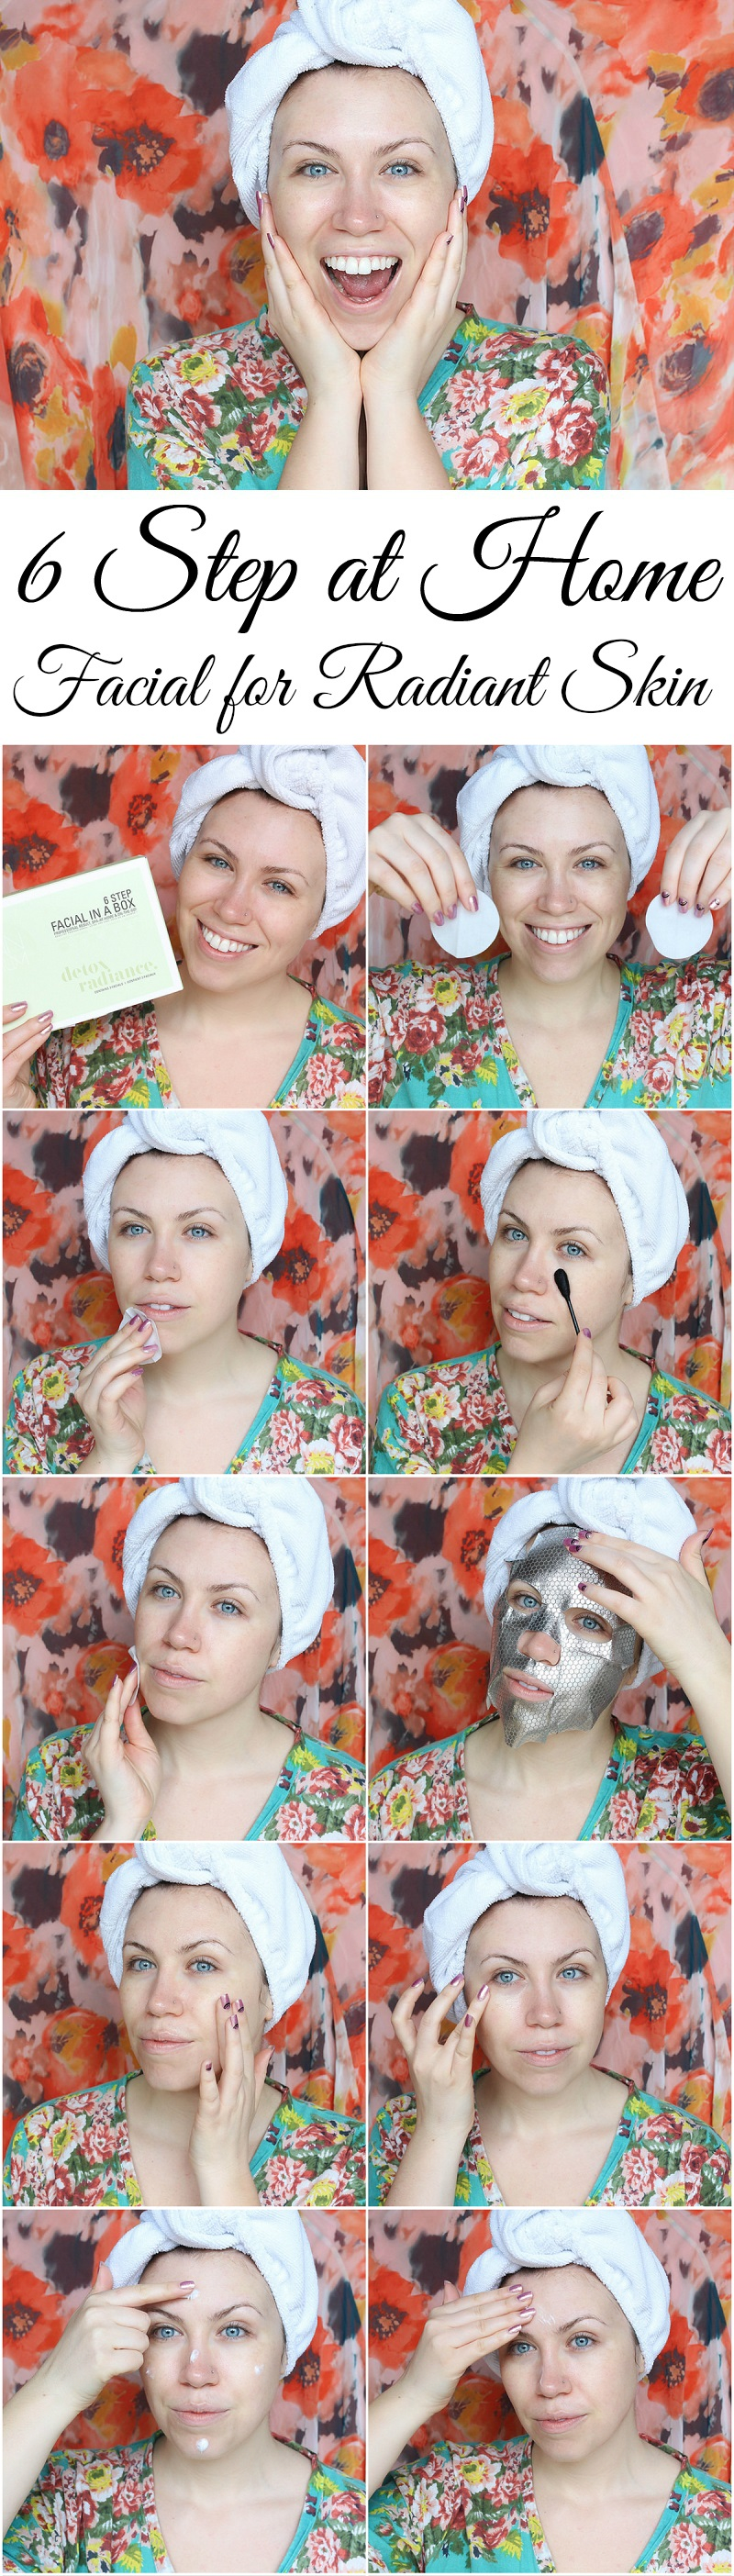 6 Step At Home Facial for Radiant Skin SkinForum Jackie Giardina Beauty Blogger Living After Midnite Skincare